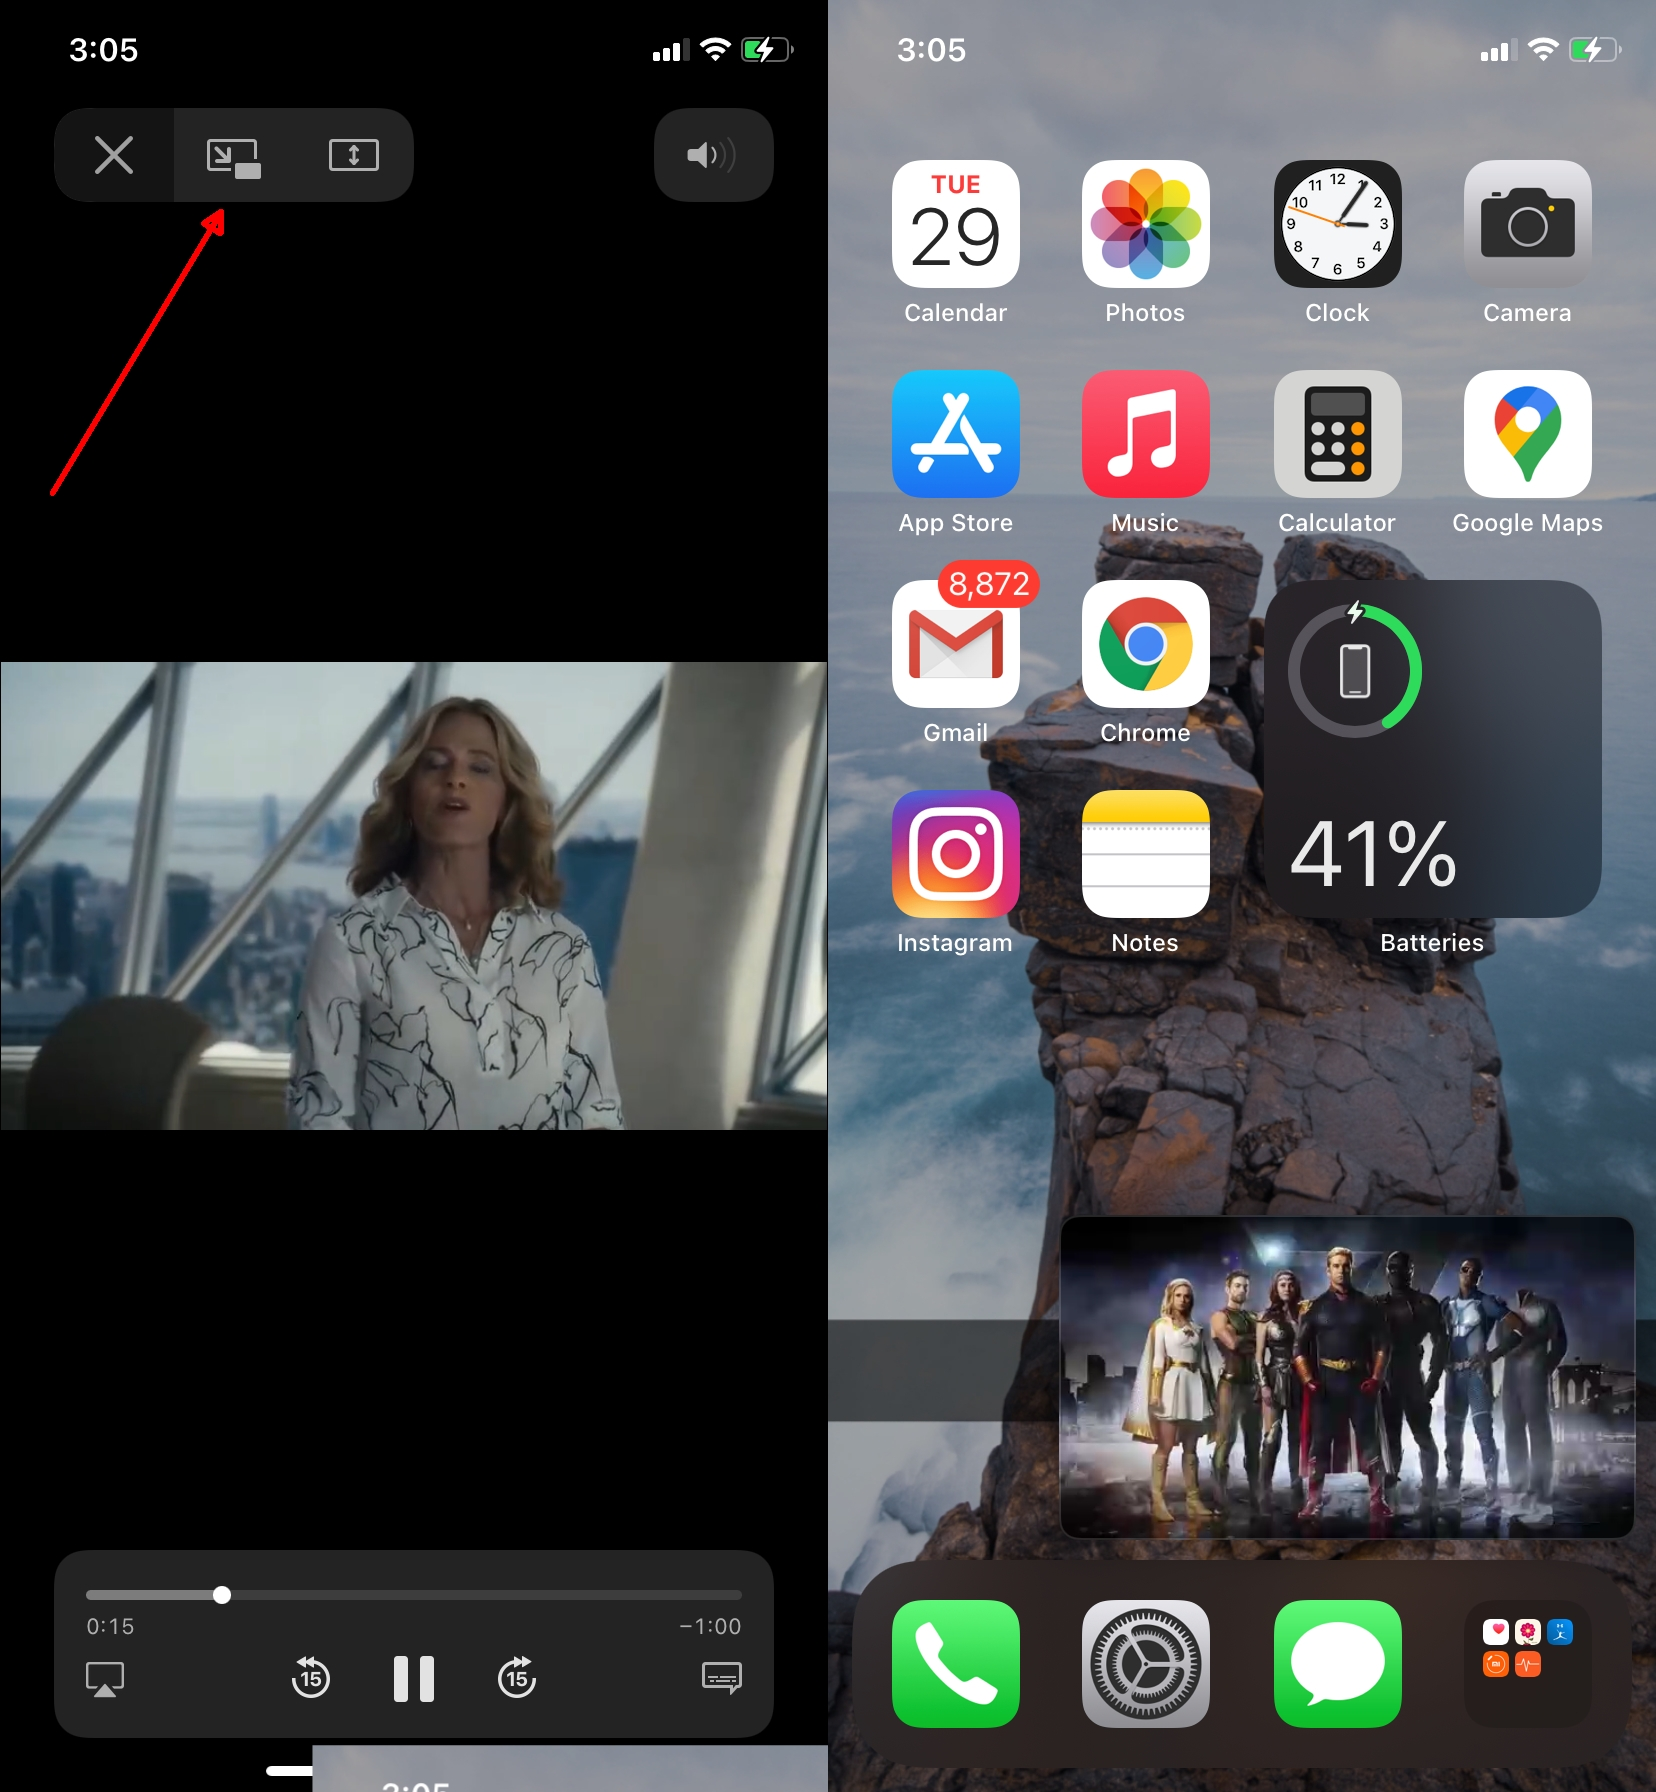 how to watch netflix in picture in picture on iphone 2 How to watch Netflix in Picture in Picture on iPhone